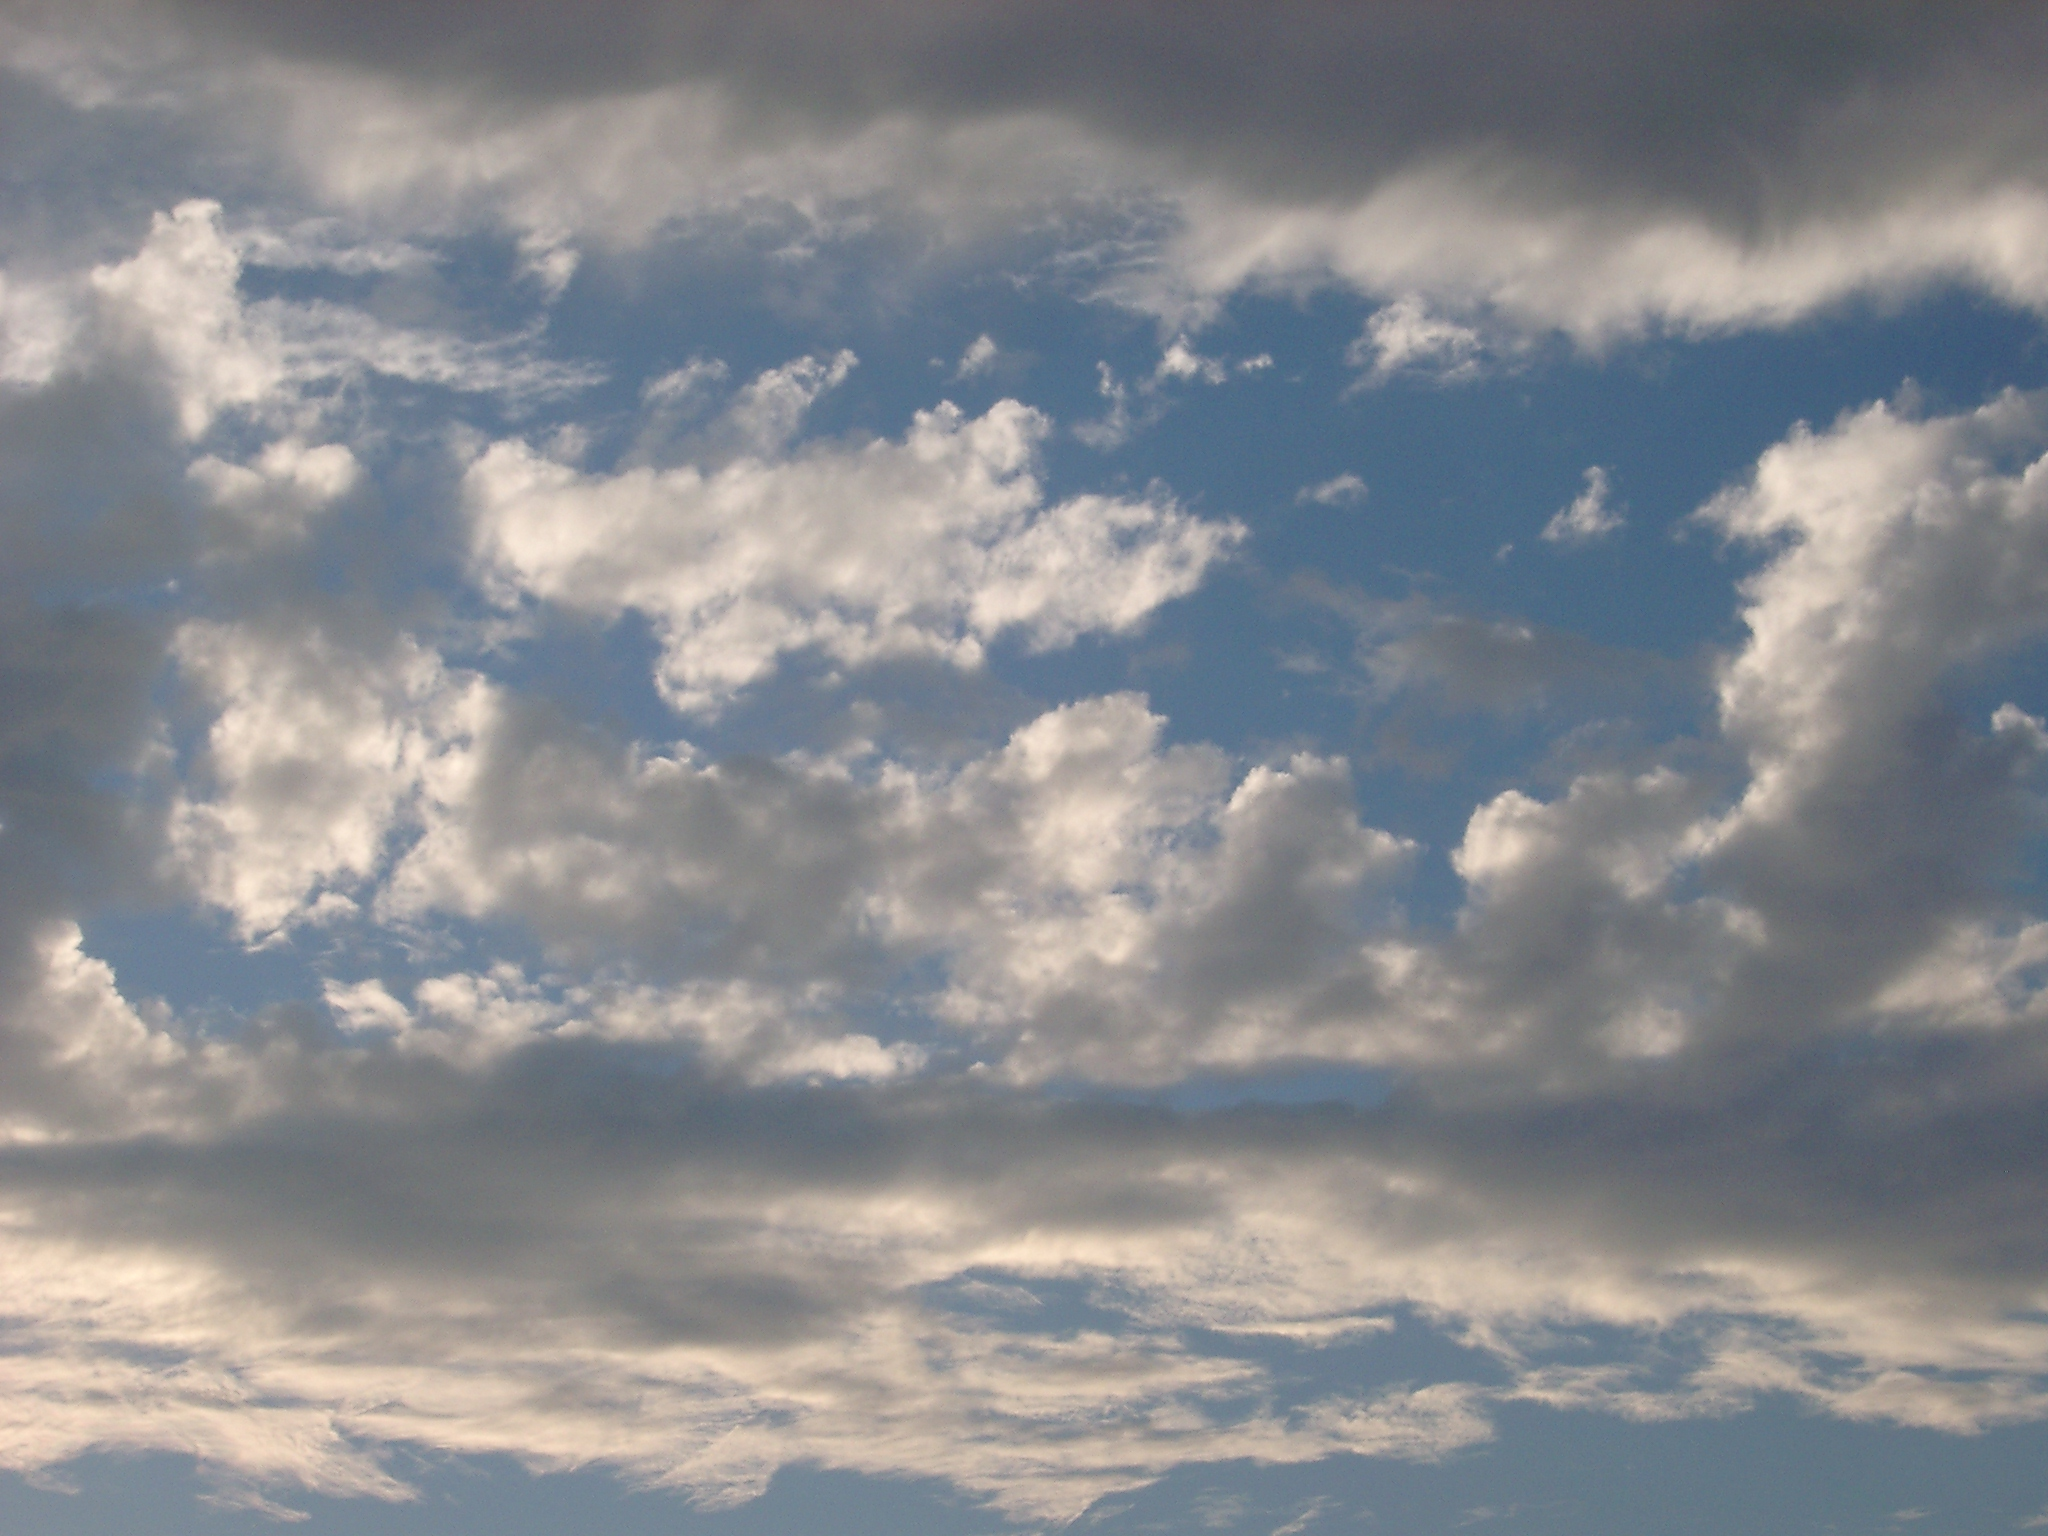 Dark Clouds Hd Wallpaper Free Stock Photo 77 Clouds4482 Jpg Freeimageslive